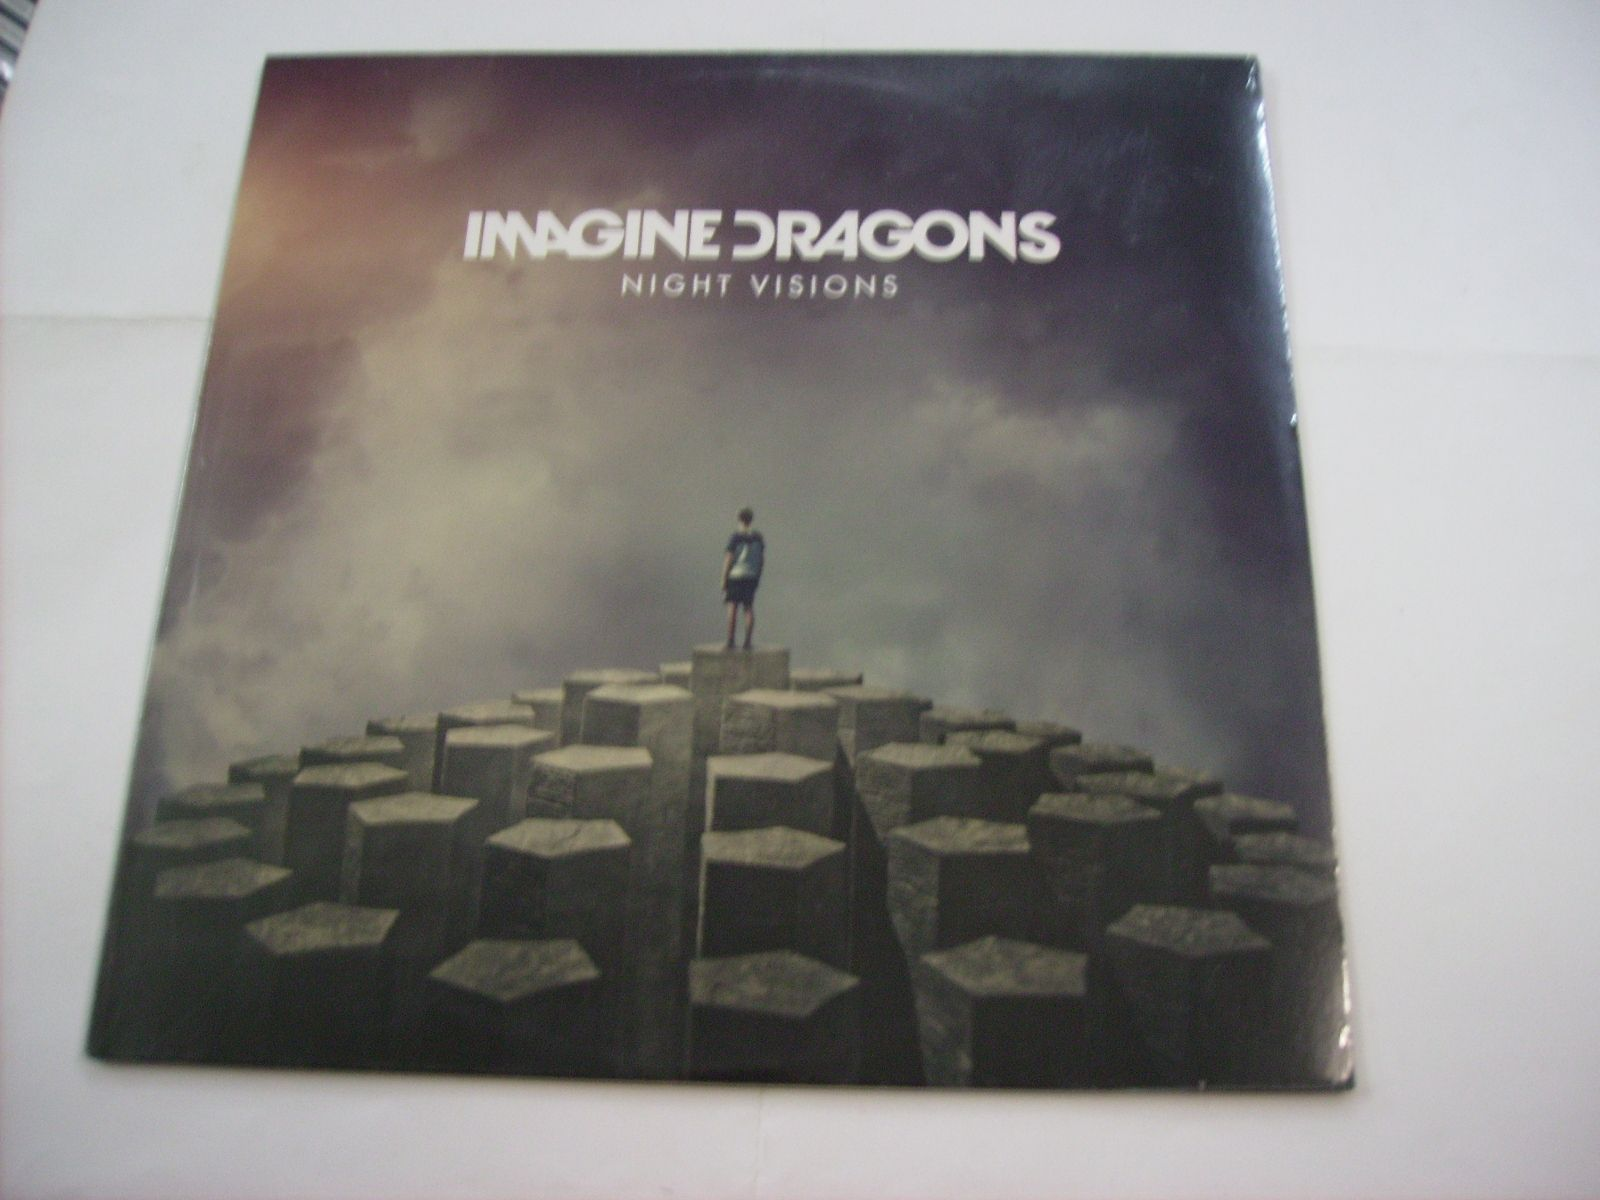 Imagine Dragons Night Visions Records LPs Vinyl And CDs